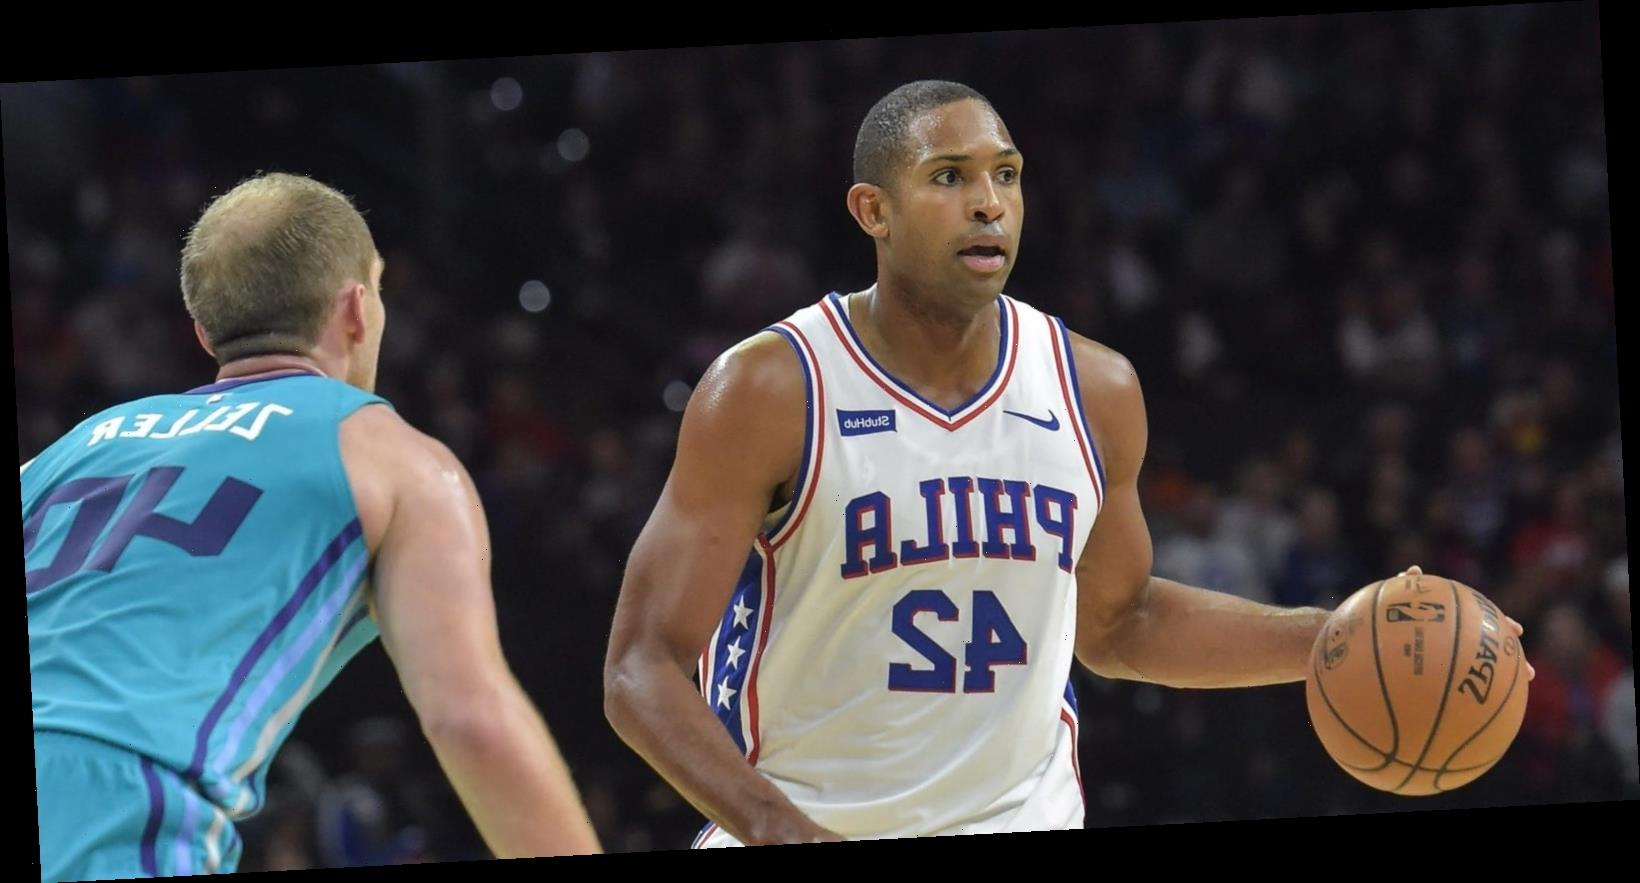 Knicks-76ers odds: Philly favored by double digits over New York